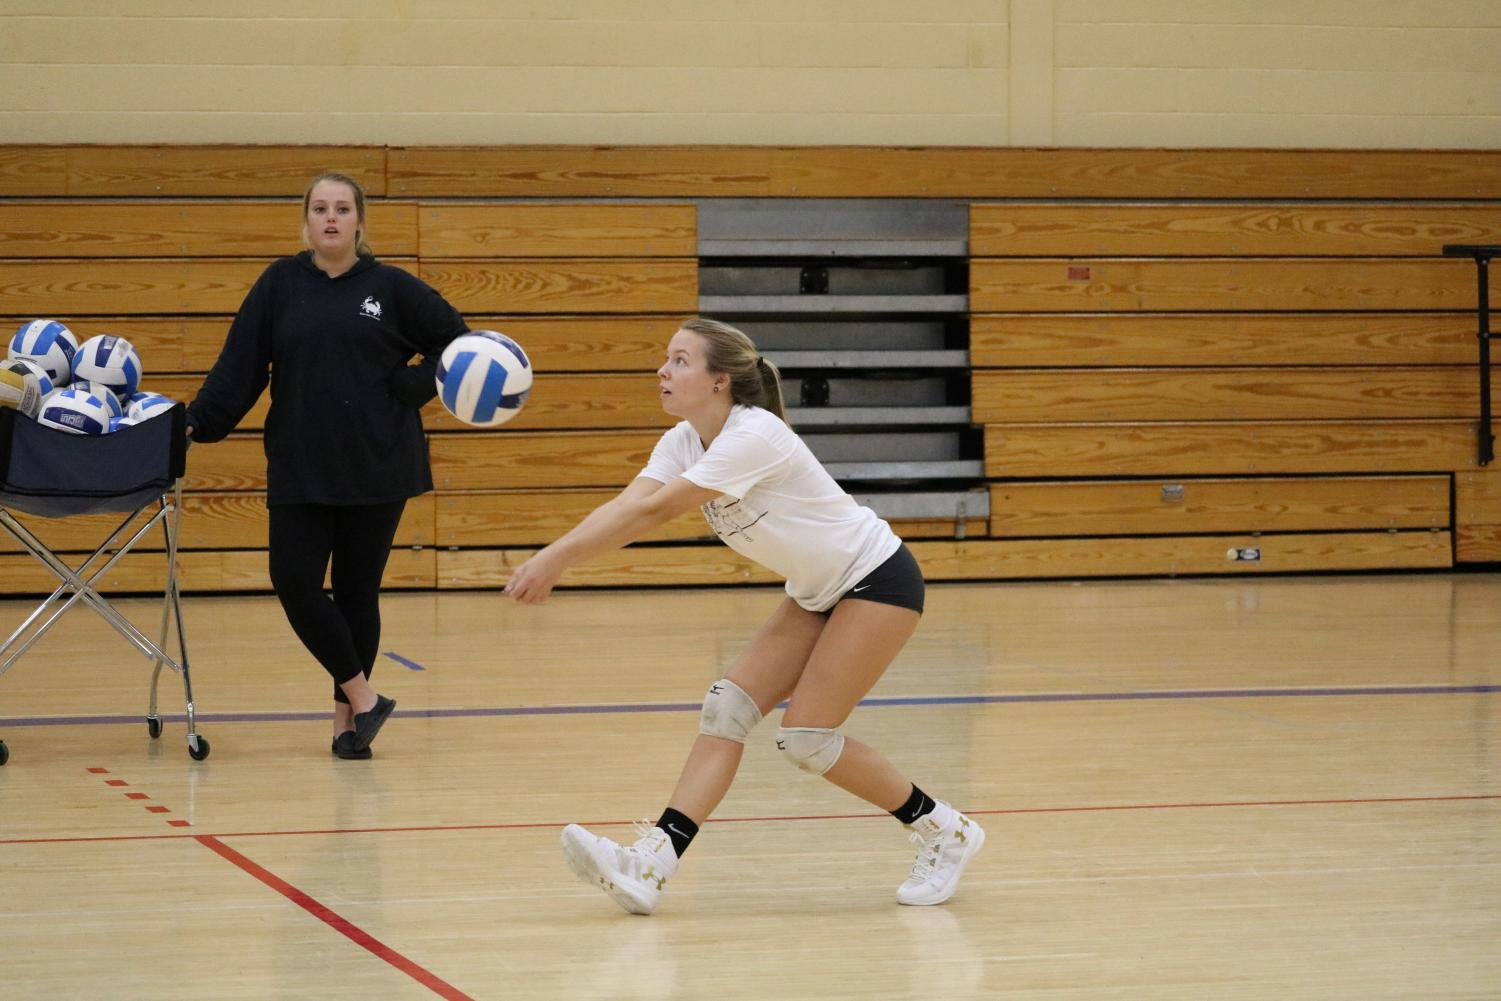 Sylvia Frye, a first-year ultrasound technician student, plays volleyball in the fall and softball in the spring. She is one of three Riverhawks who play dual sports.